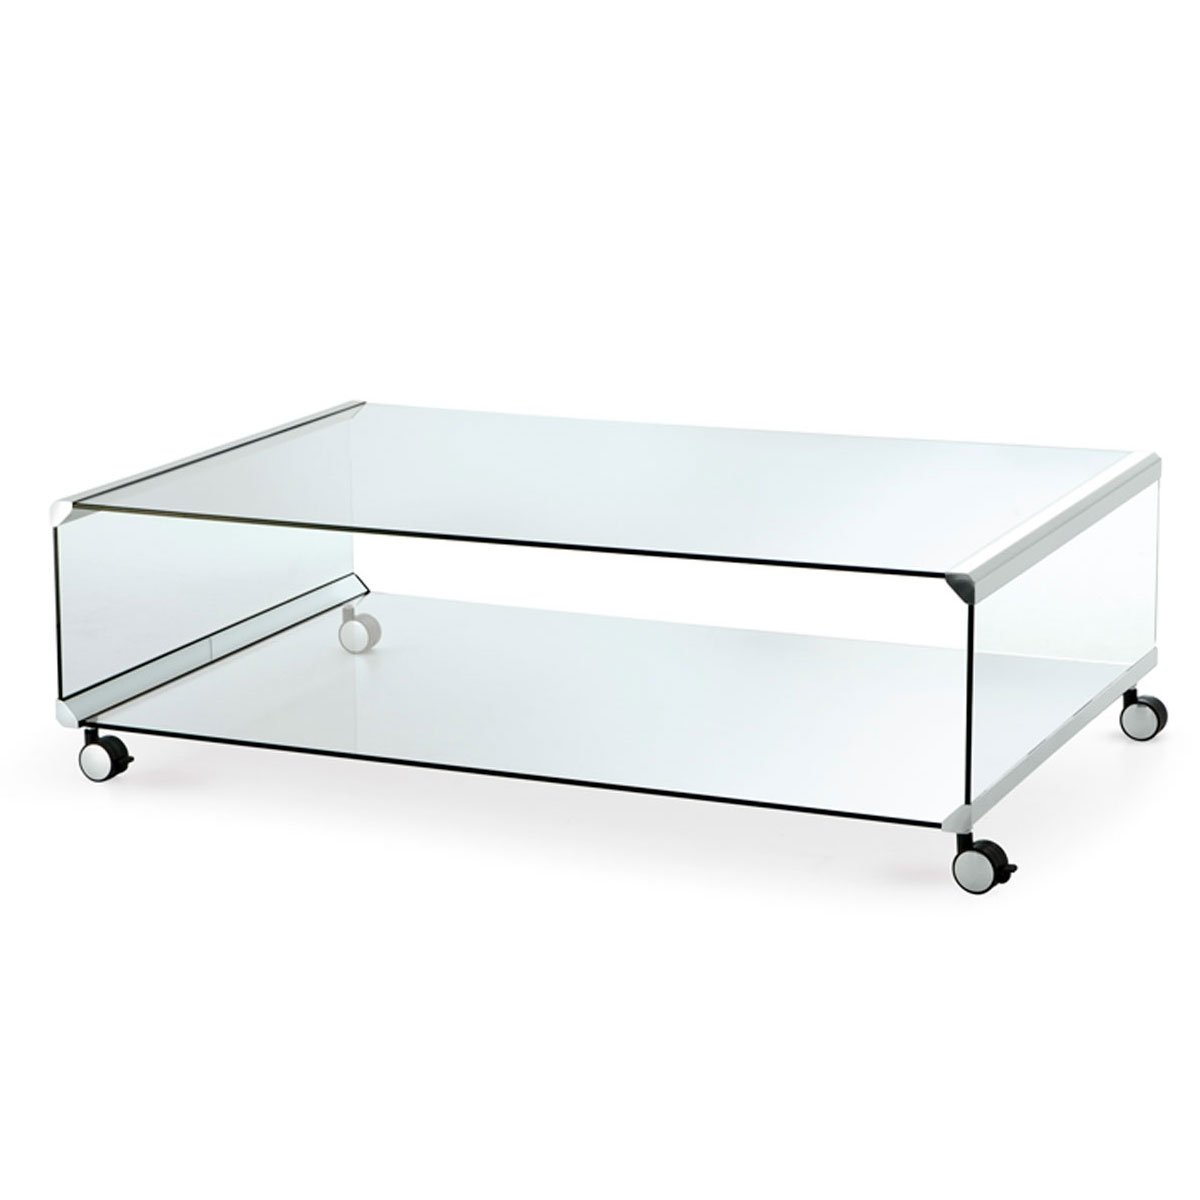 George 2 Glass And Metal Coffee Table With Castors By Gallotti Radice Klarity Glass Furniture